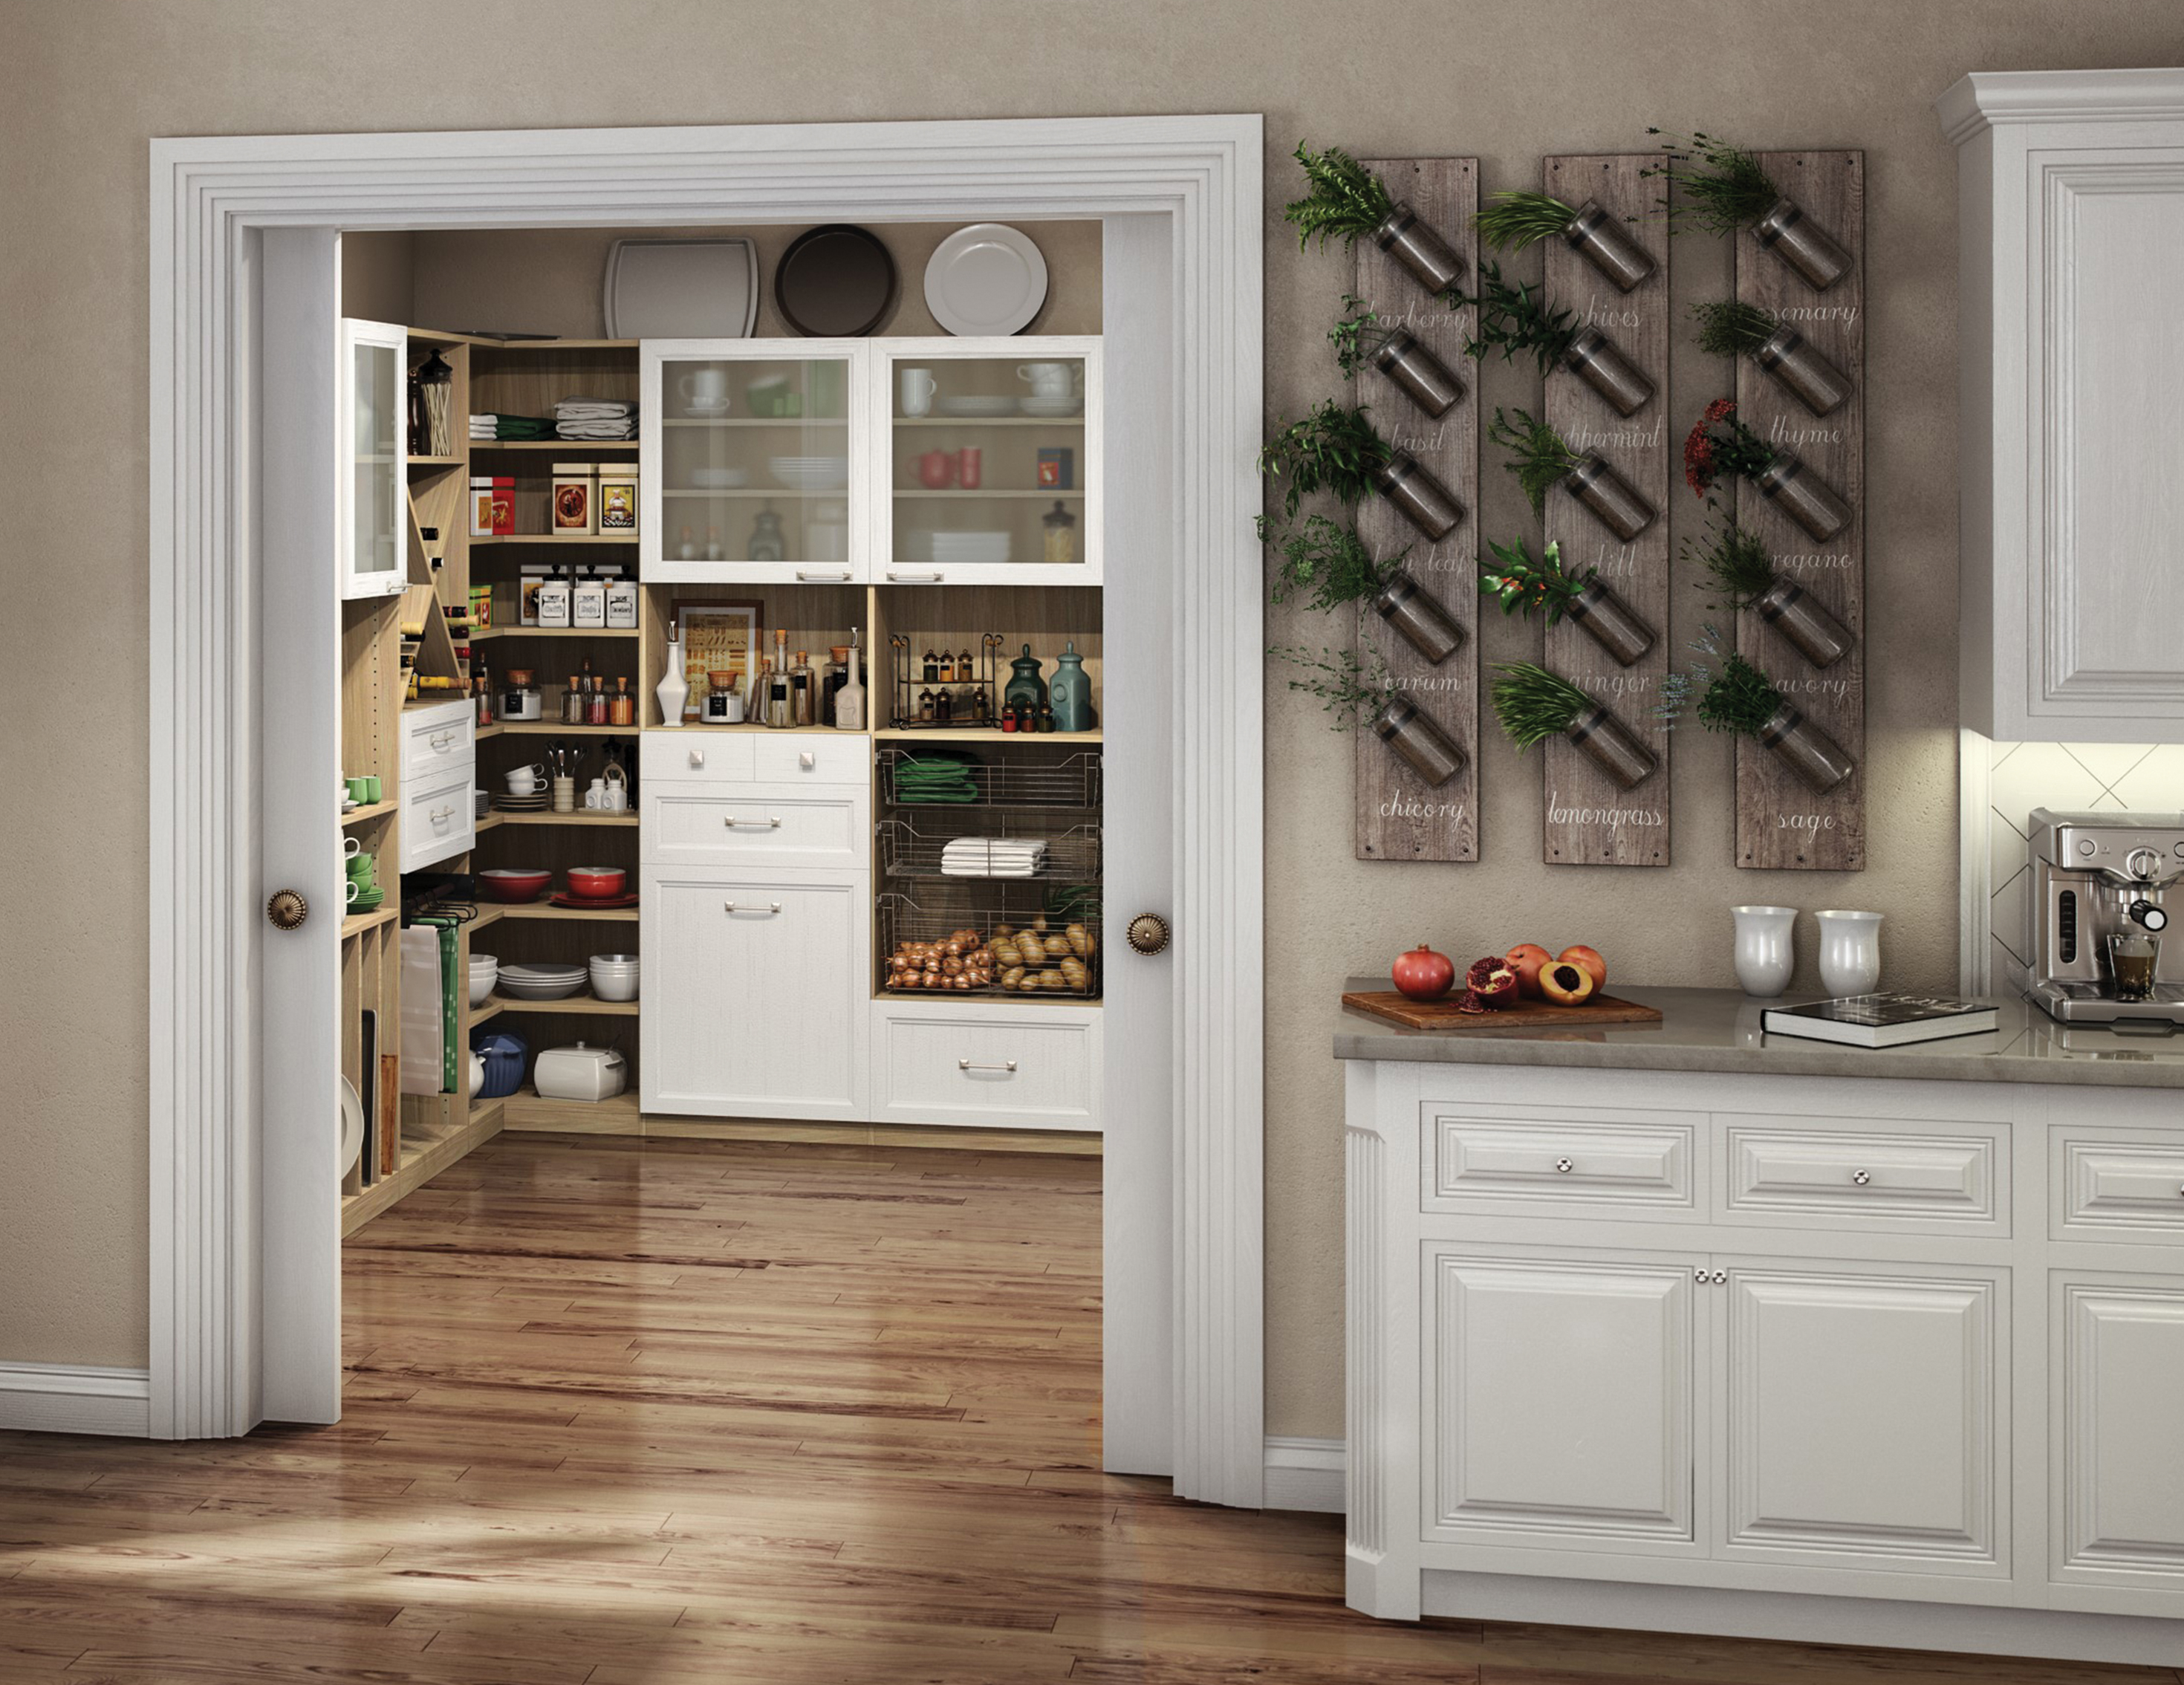 California Closets London - California Closets Montreal - Chef Pantry and Kitchen Storage System